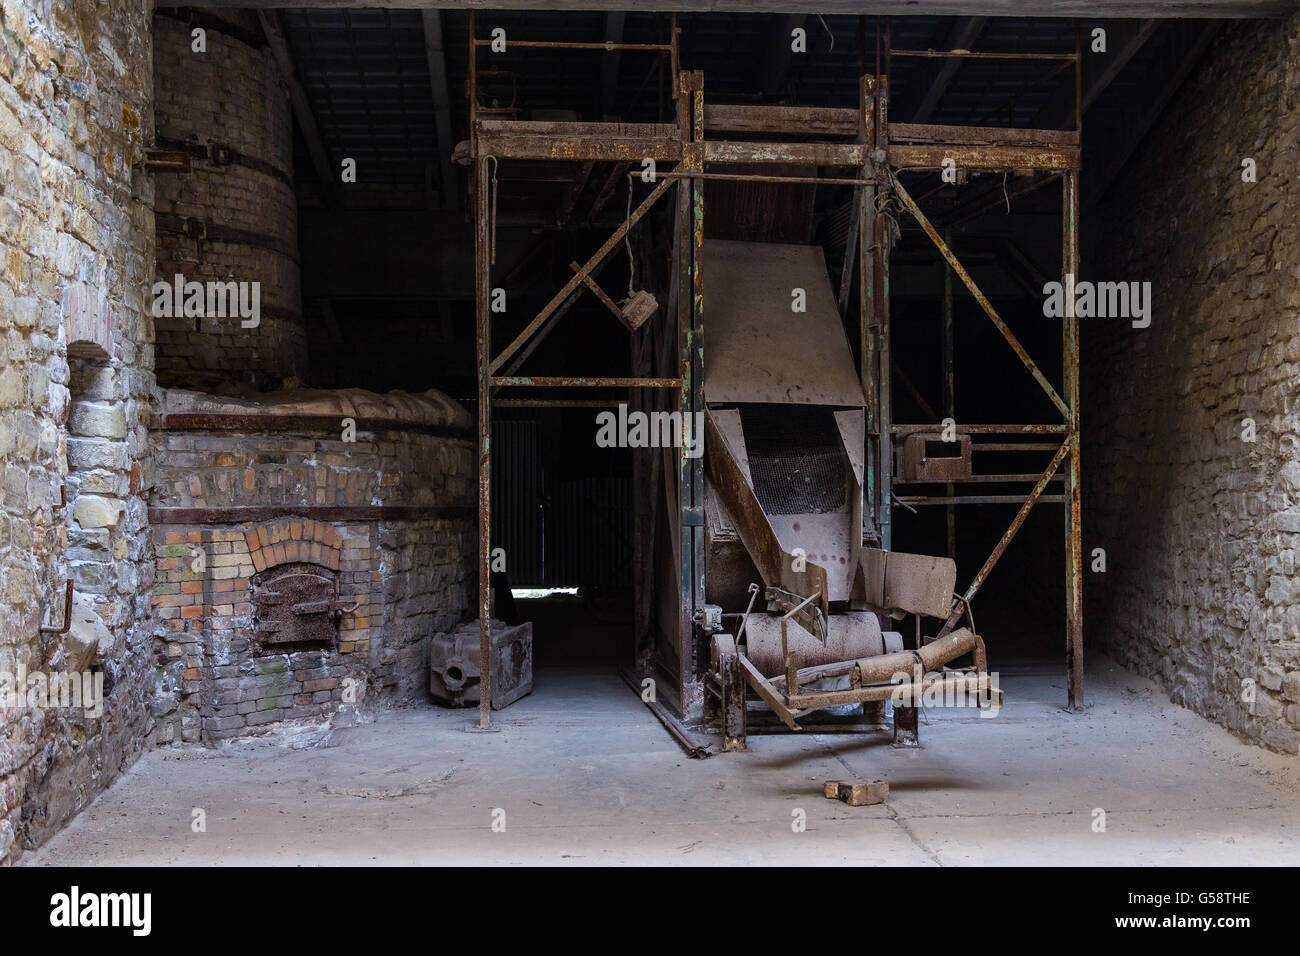 abandoned factory interior old building stock photos abandoned factory interior old building. Black Bedroom Furniture Sets. Home Design Ideas